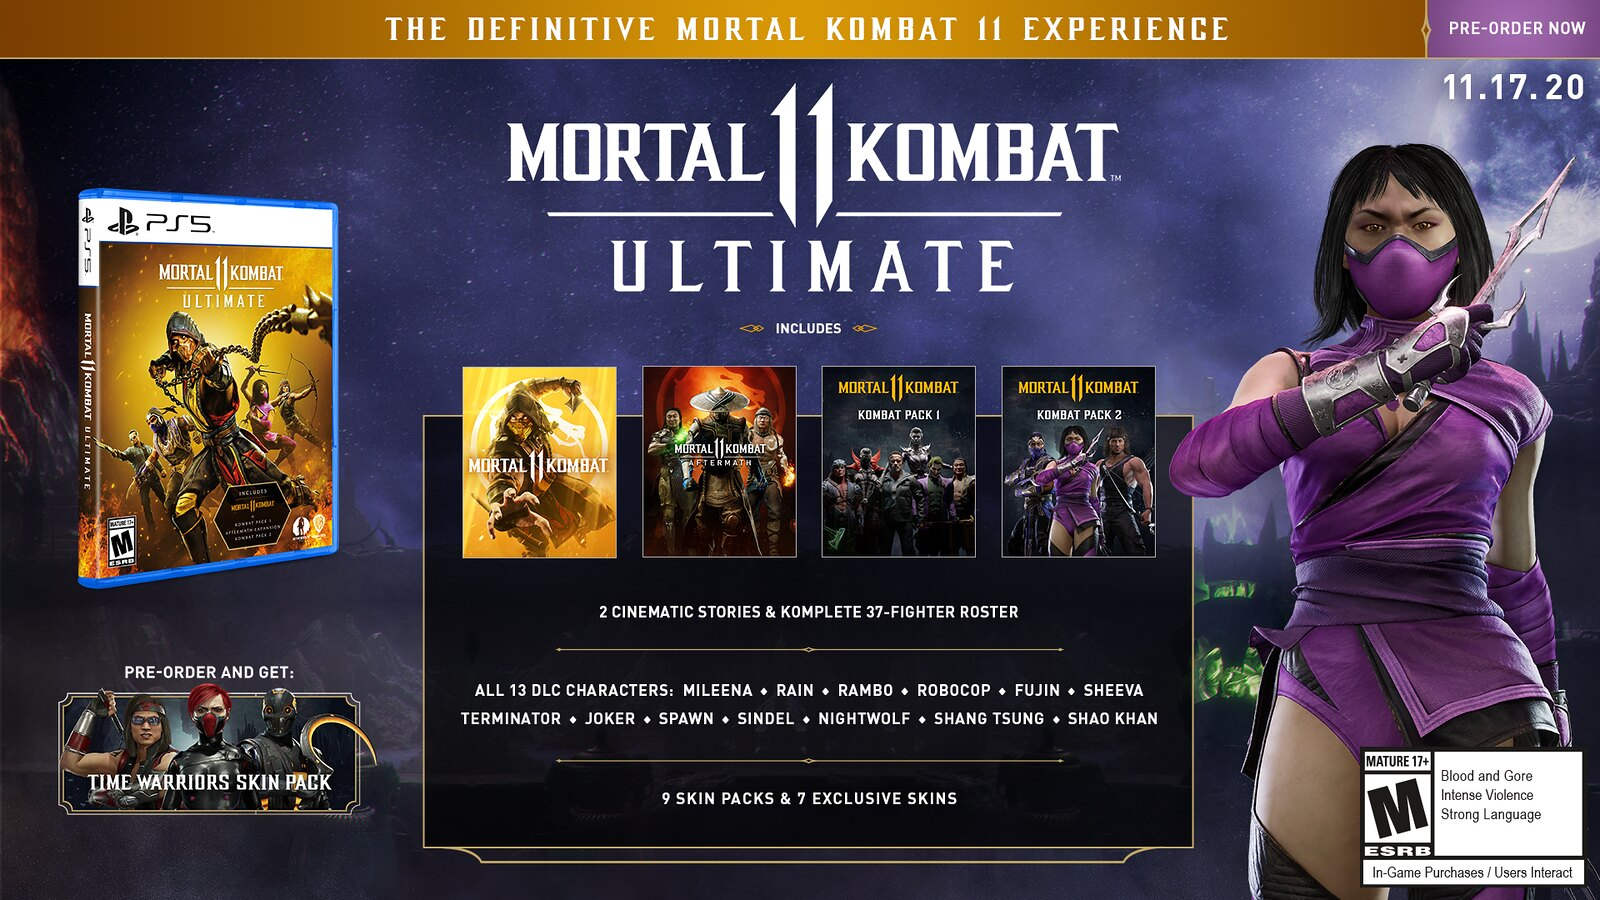 Mortal Kombat 11: Ultimate